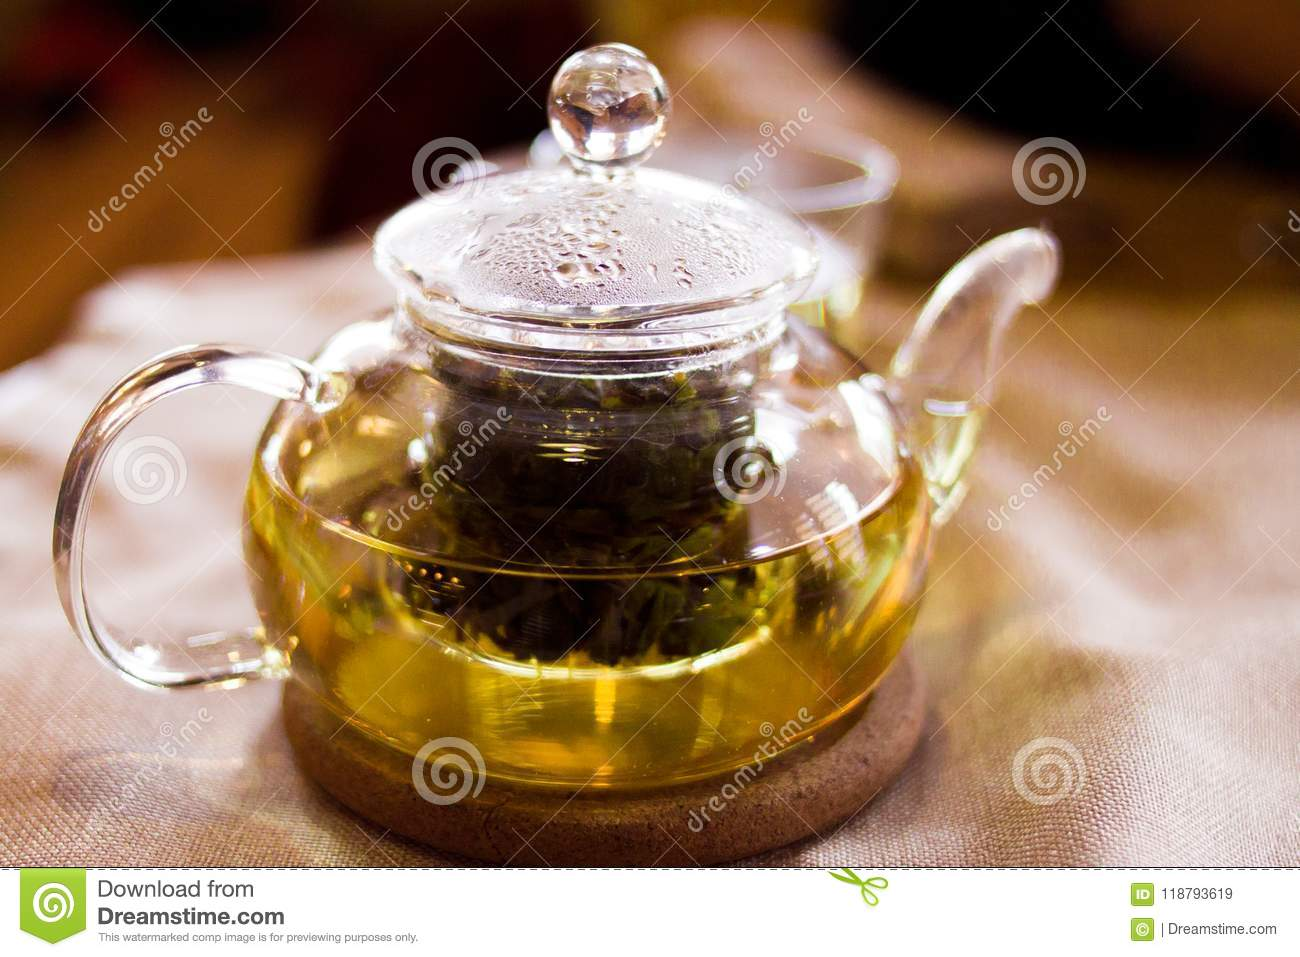 Beverages Good Morning And Breakfast Concept Cup Of White Green Tea And Teapot On The Table Stock Image Image Of Afternoon Fruit 118793619